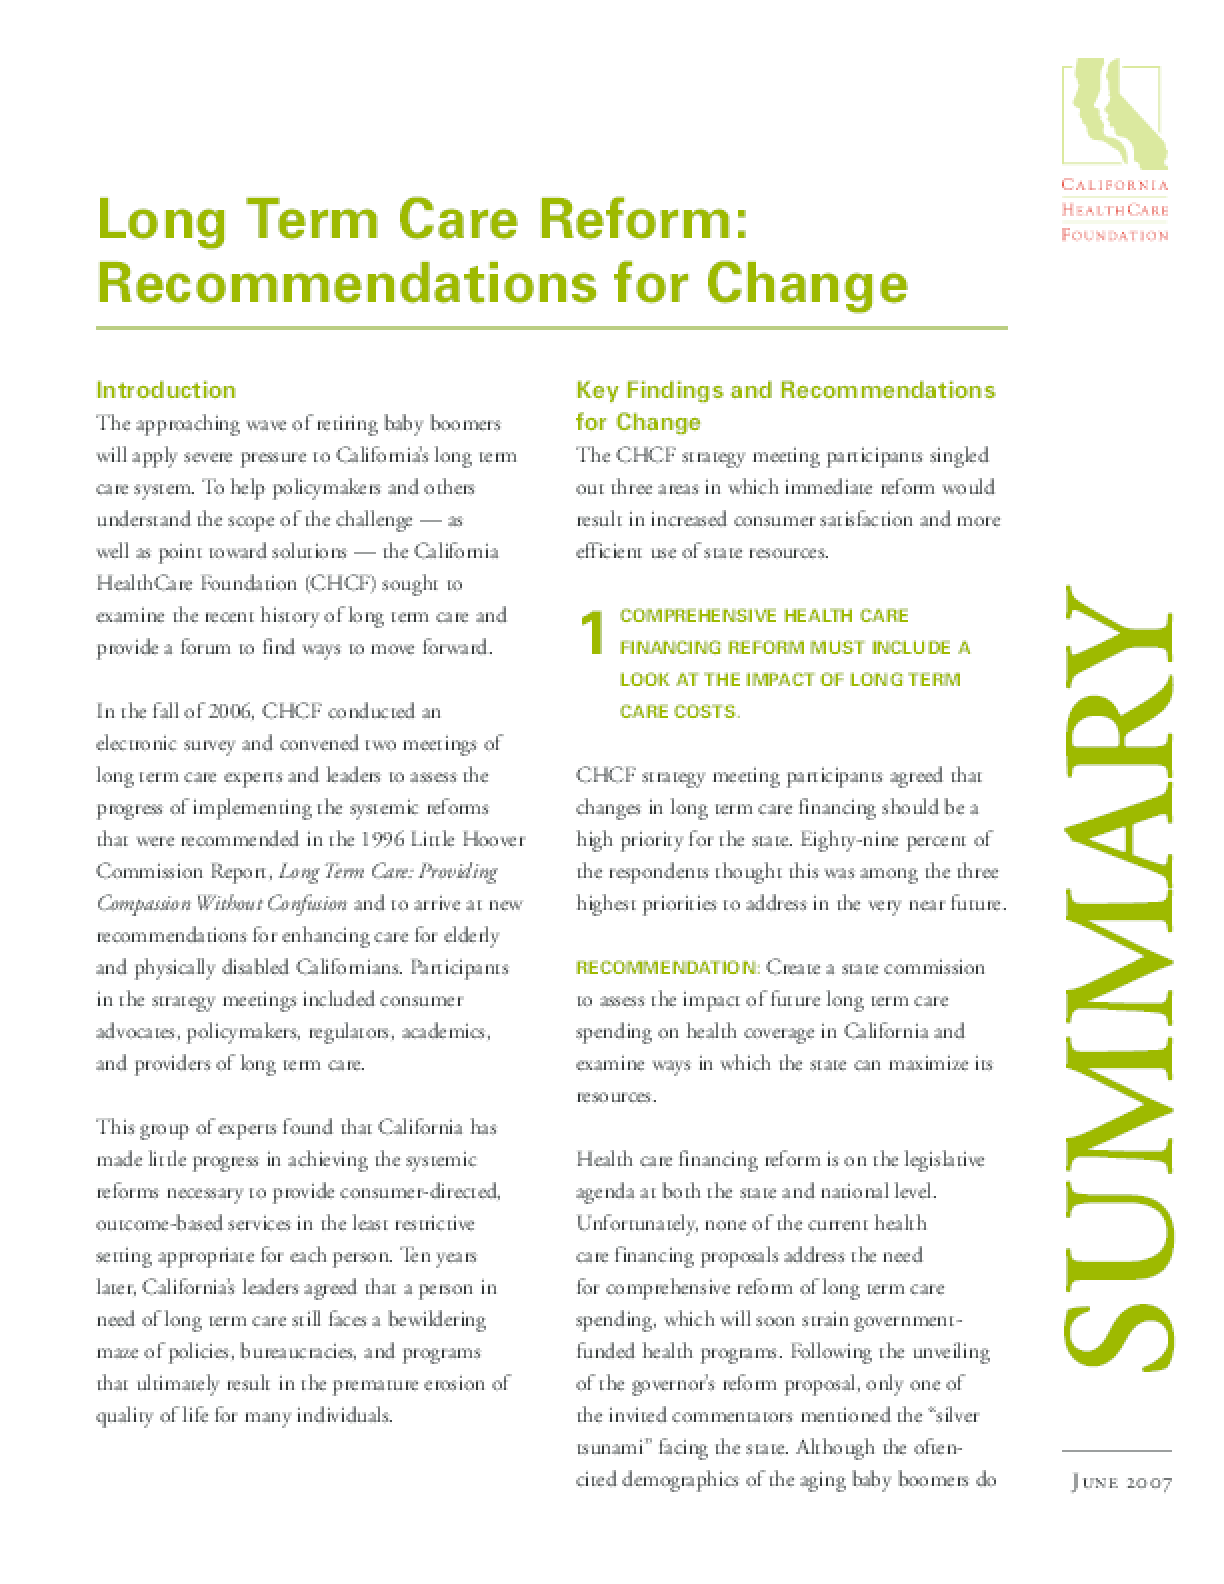 Long Term Care Reform: Recommendations for Change